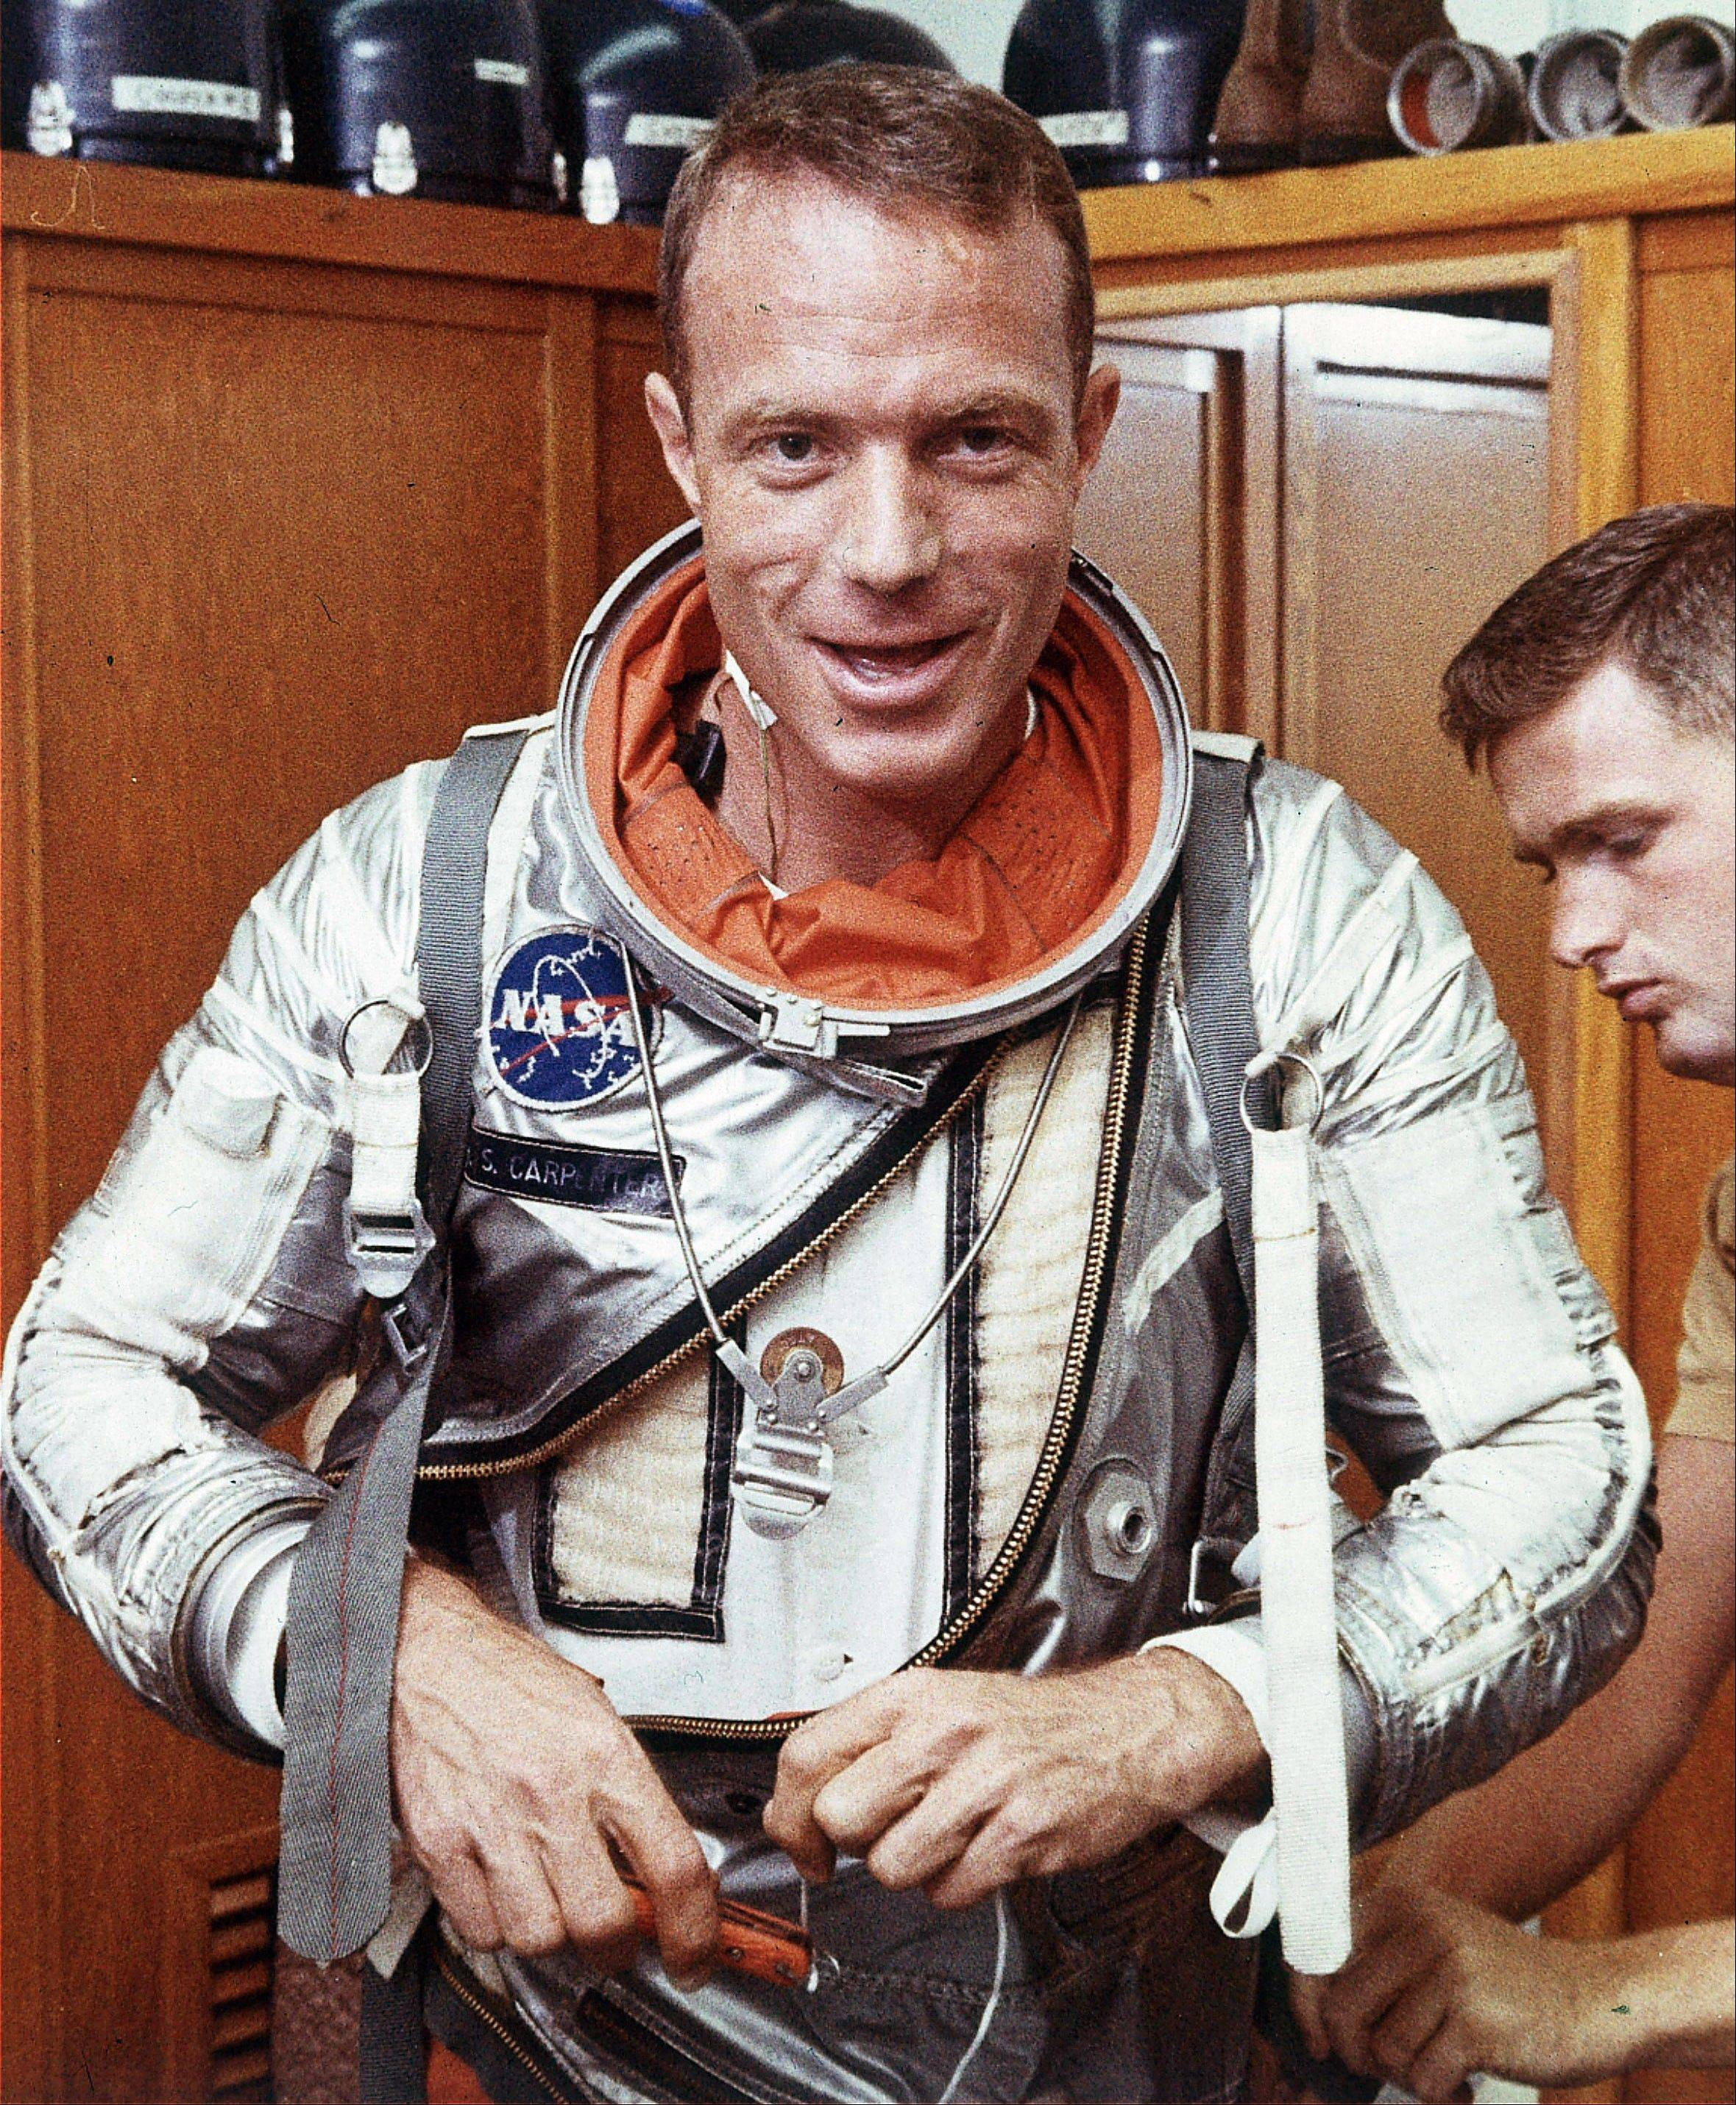 Astronaut Scott Carpenter has his space suit adjusted by a technician in Cape Canaveral, Fla.